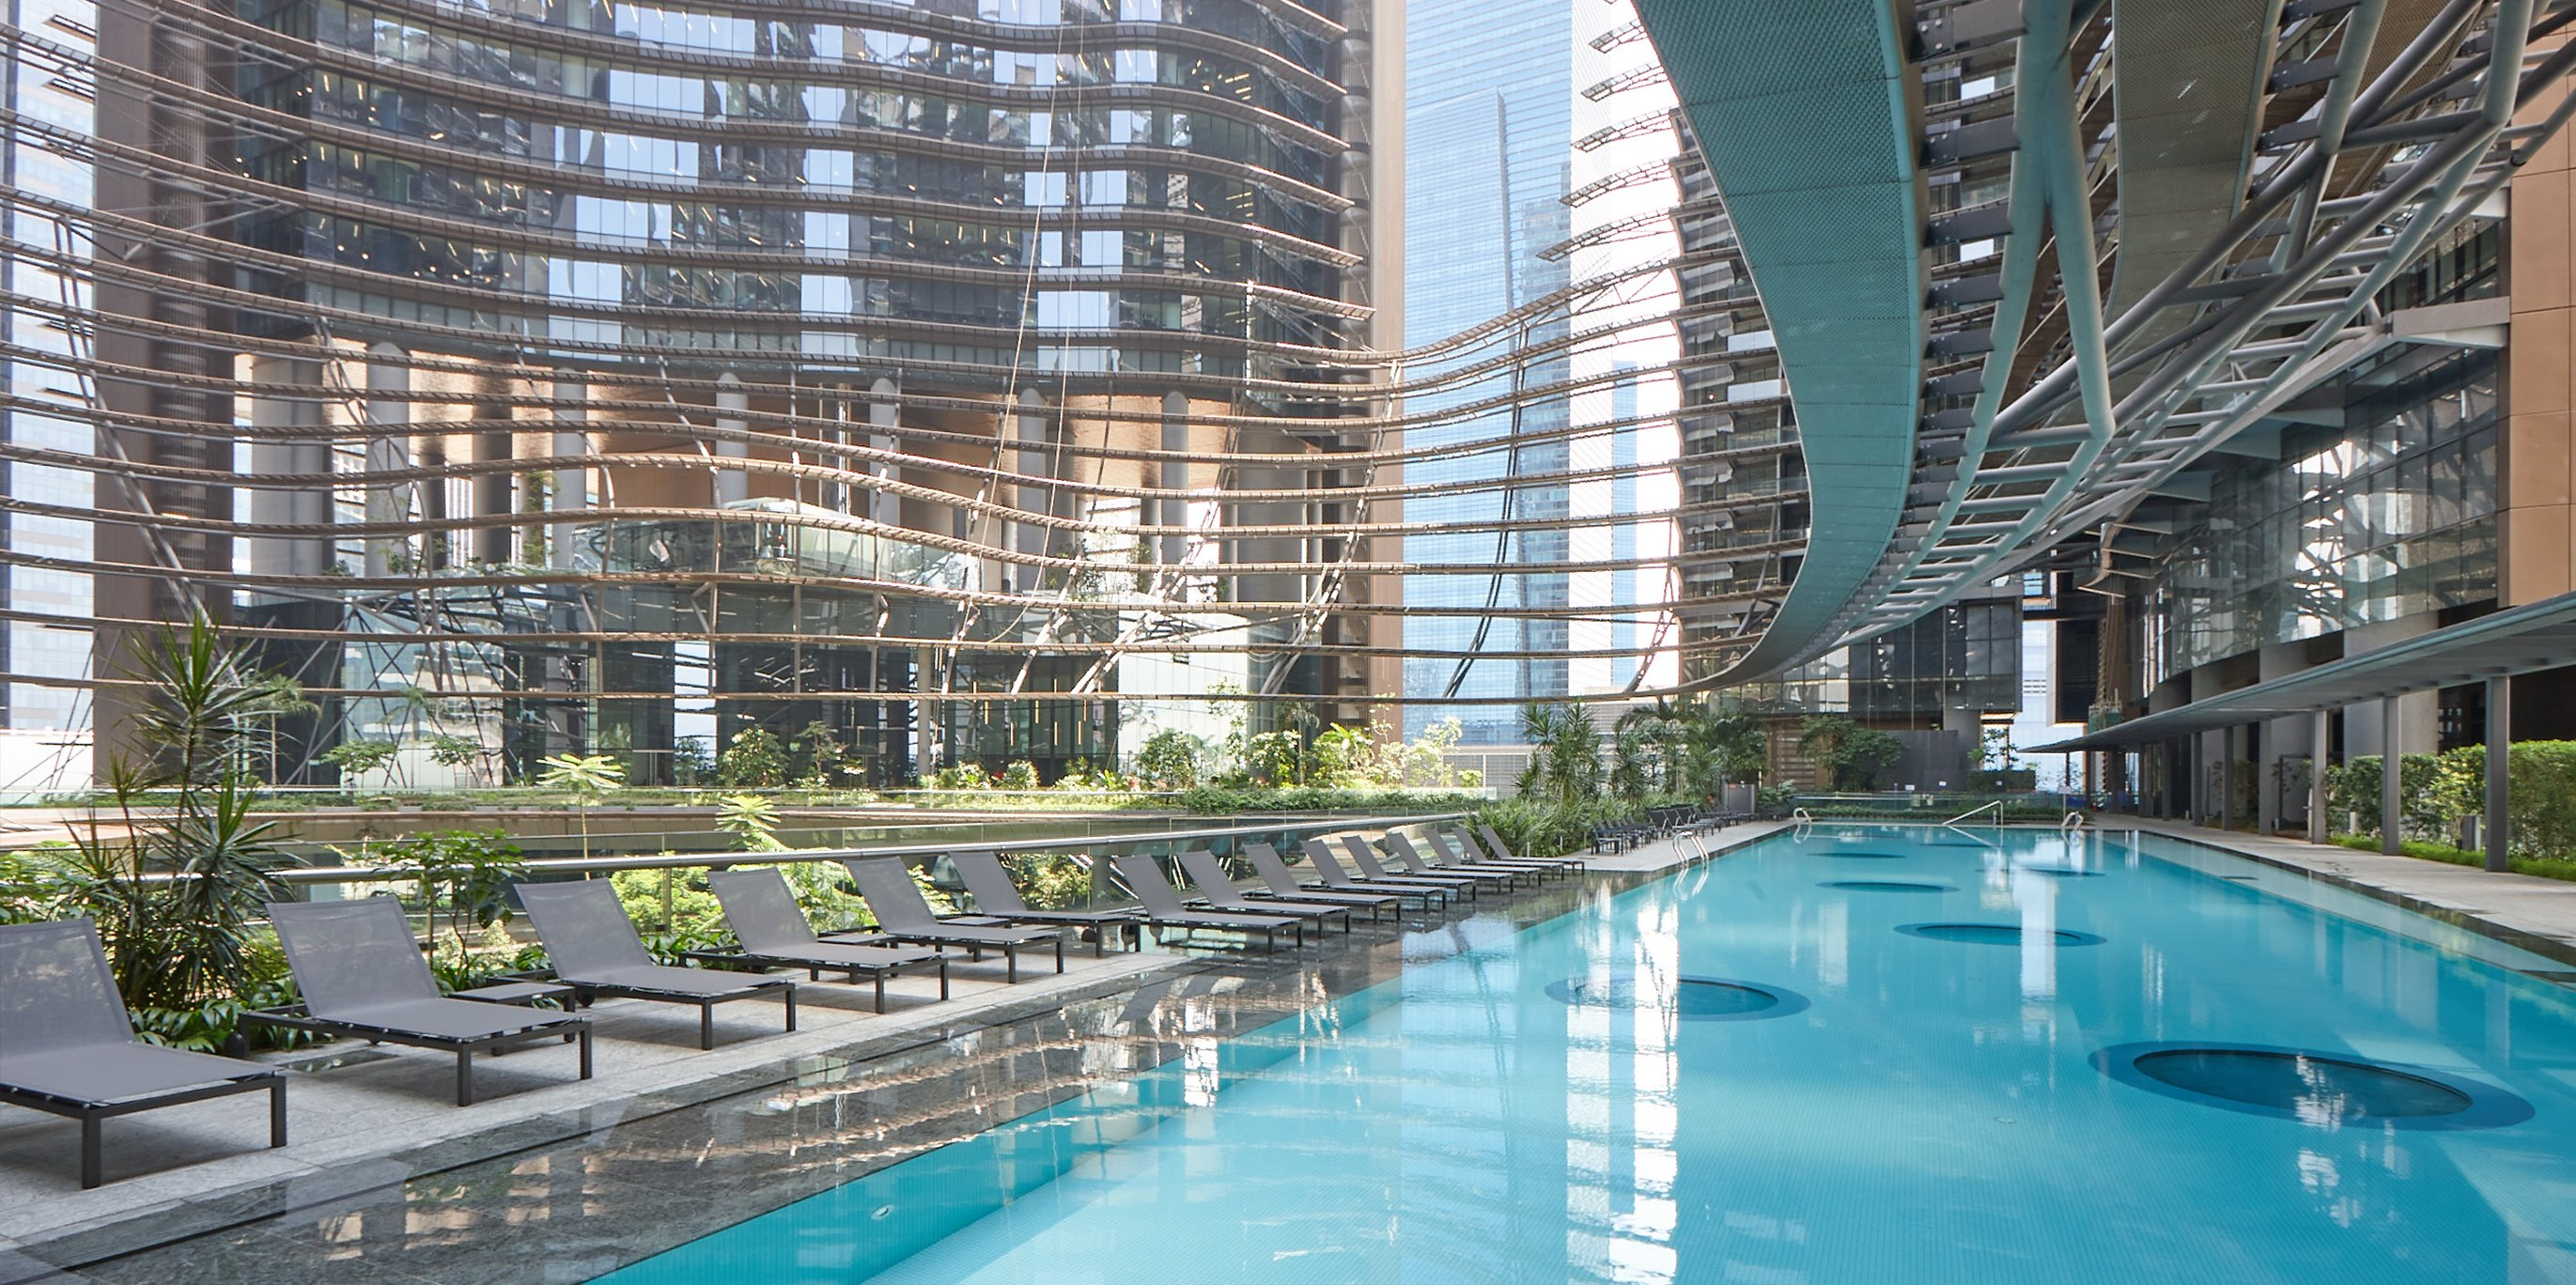 滨海盛景豪苑 marina one residences lap pool